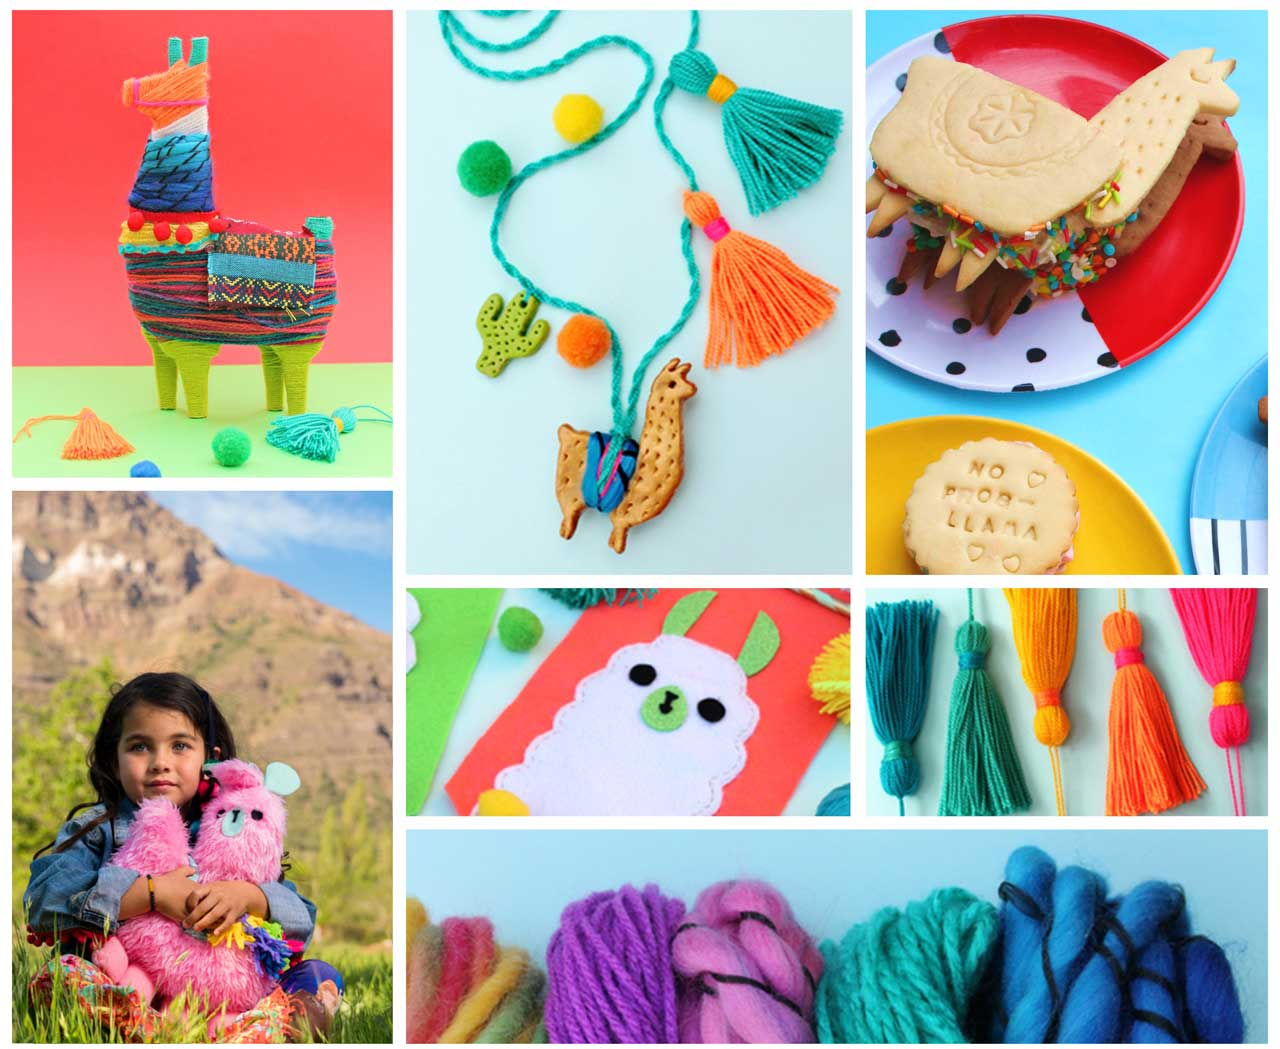 Easy to follow step-by-step photos and templates for making cute llamas at home